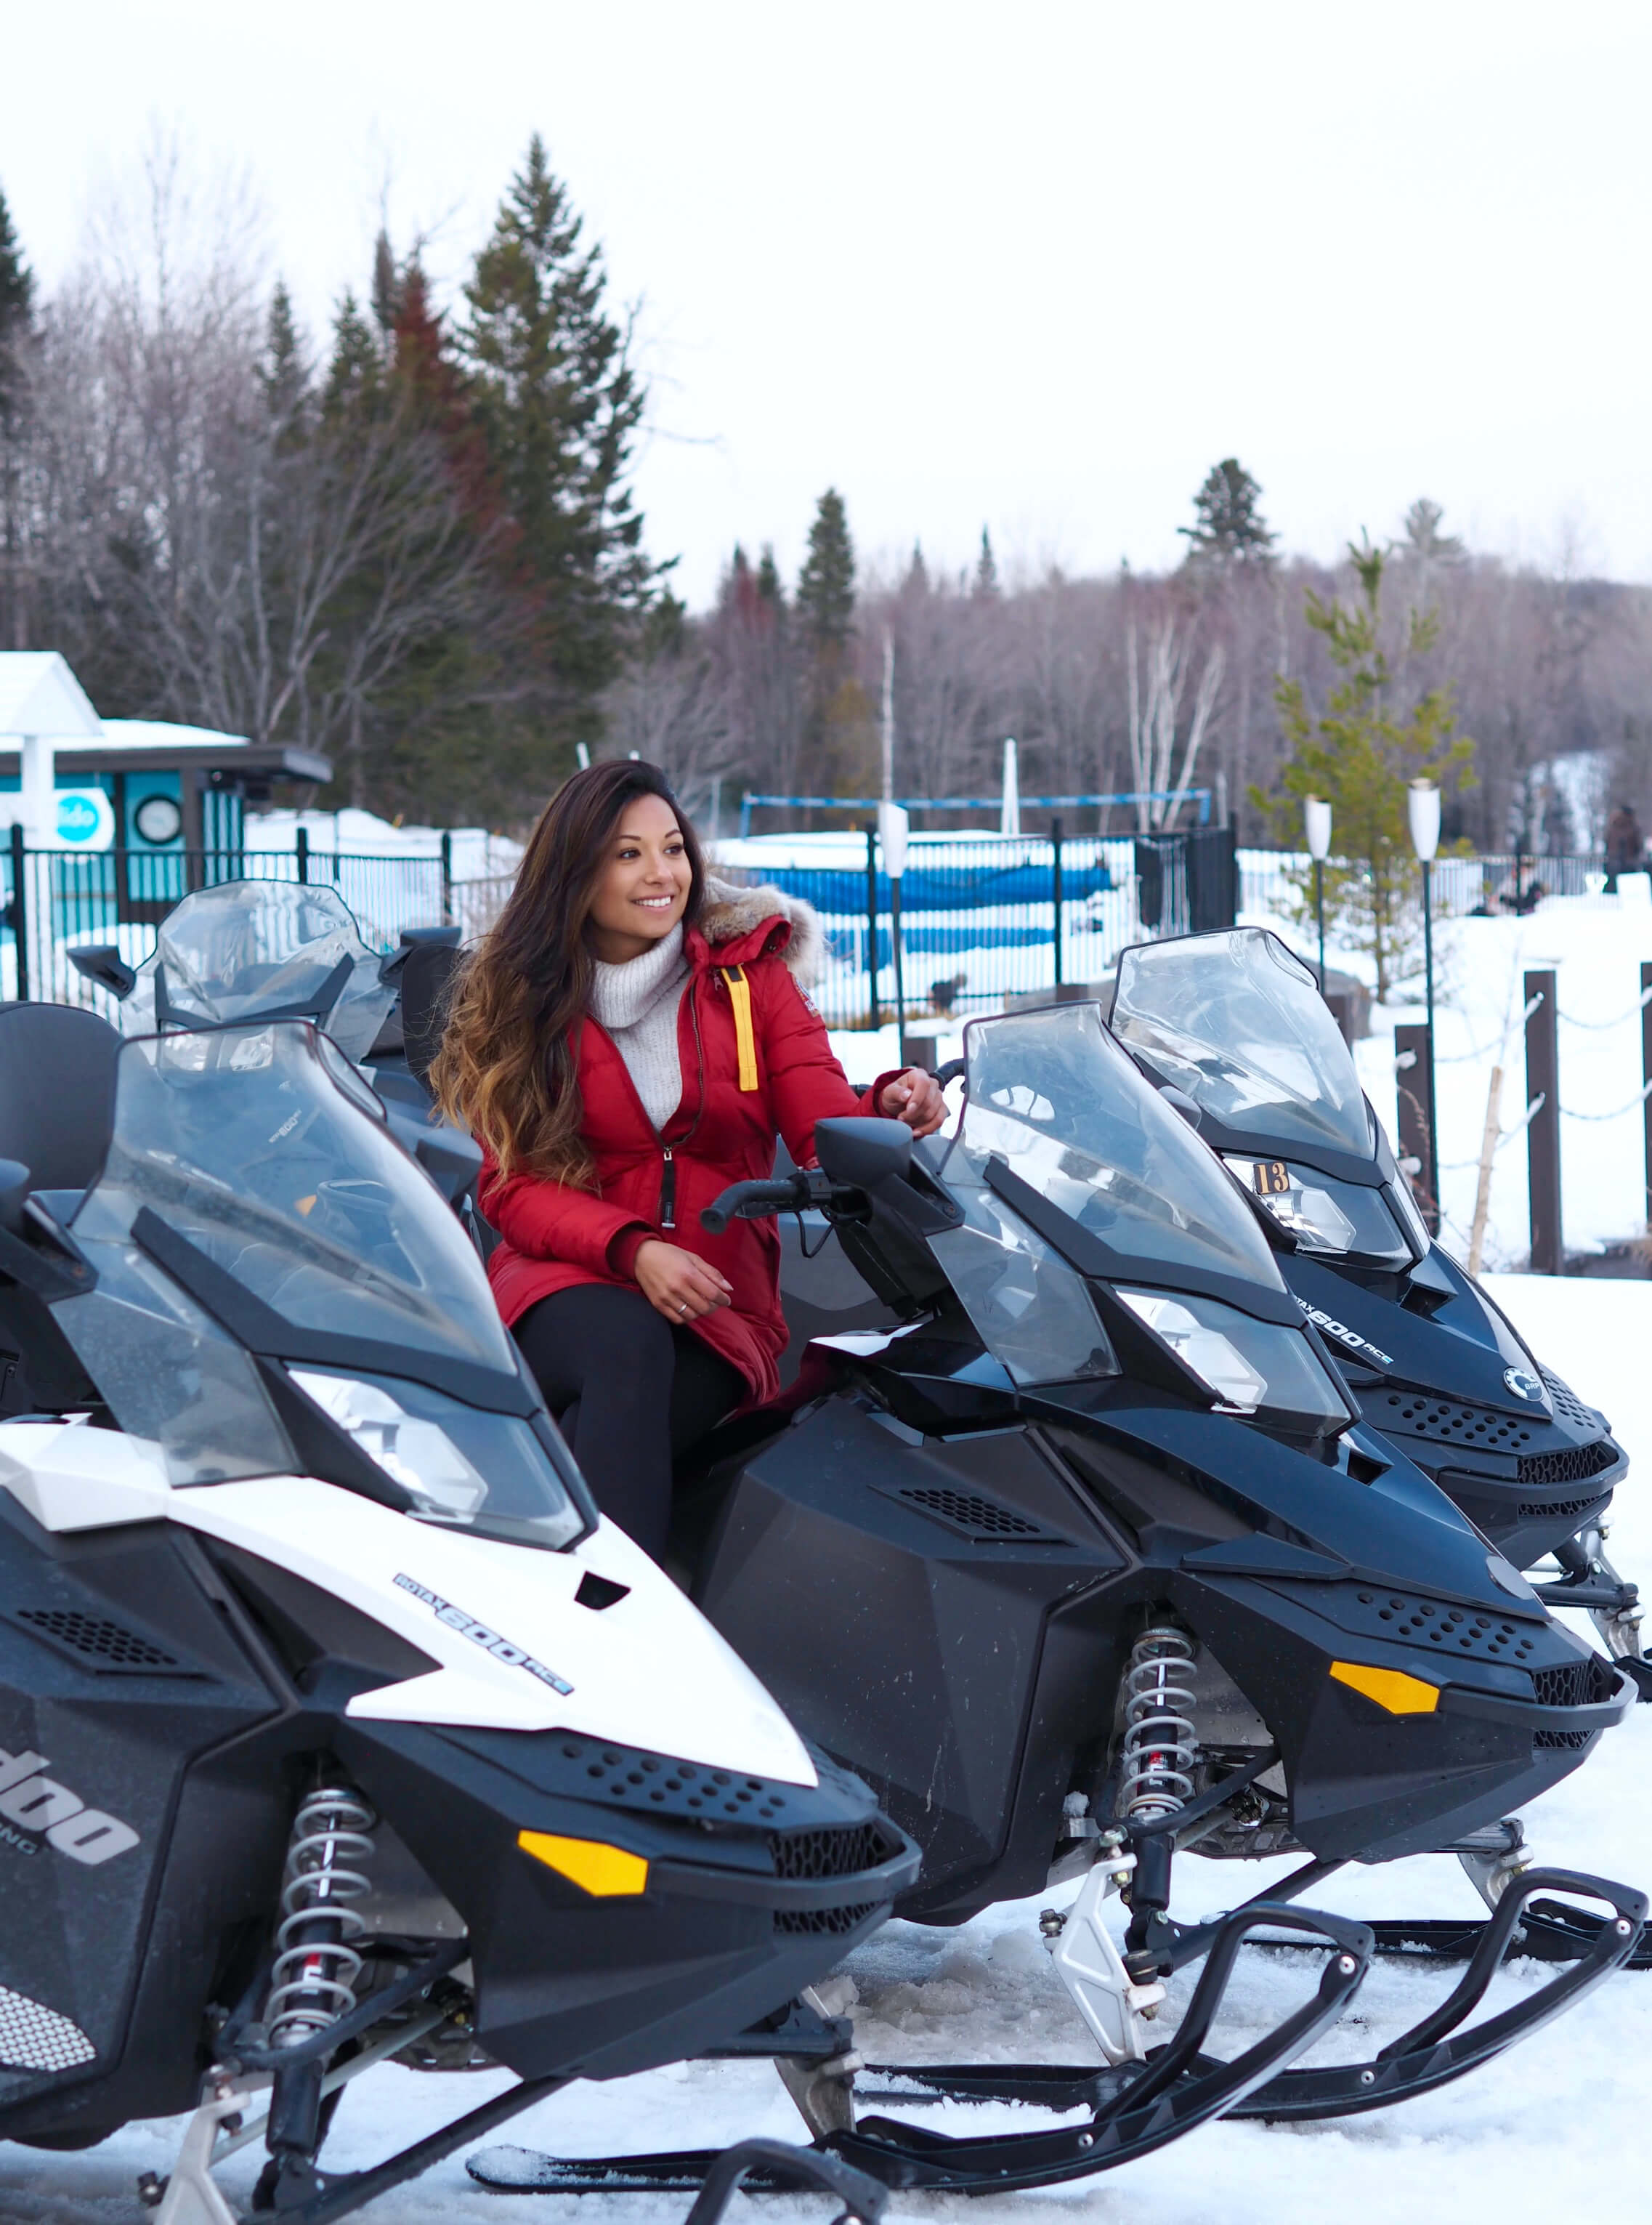 The Esterel Resort Snowmobiling